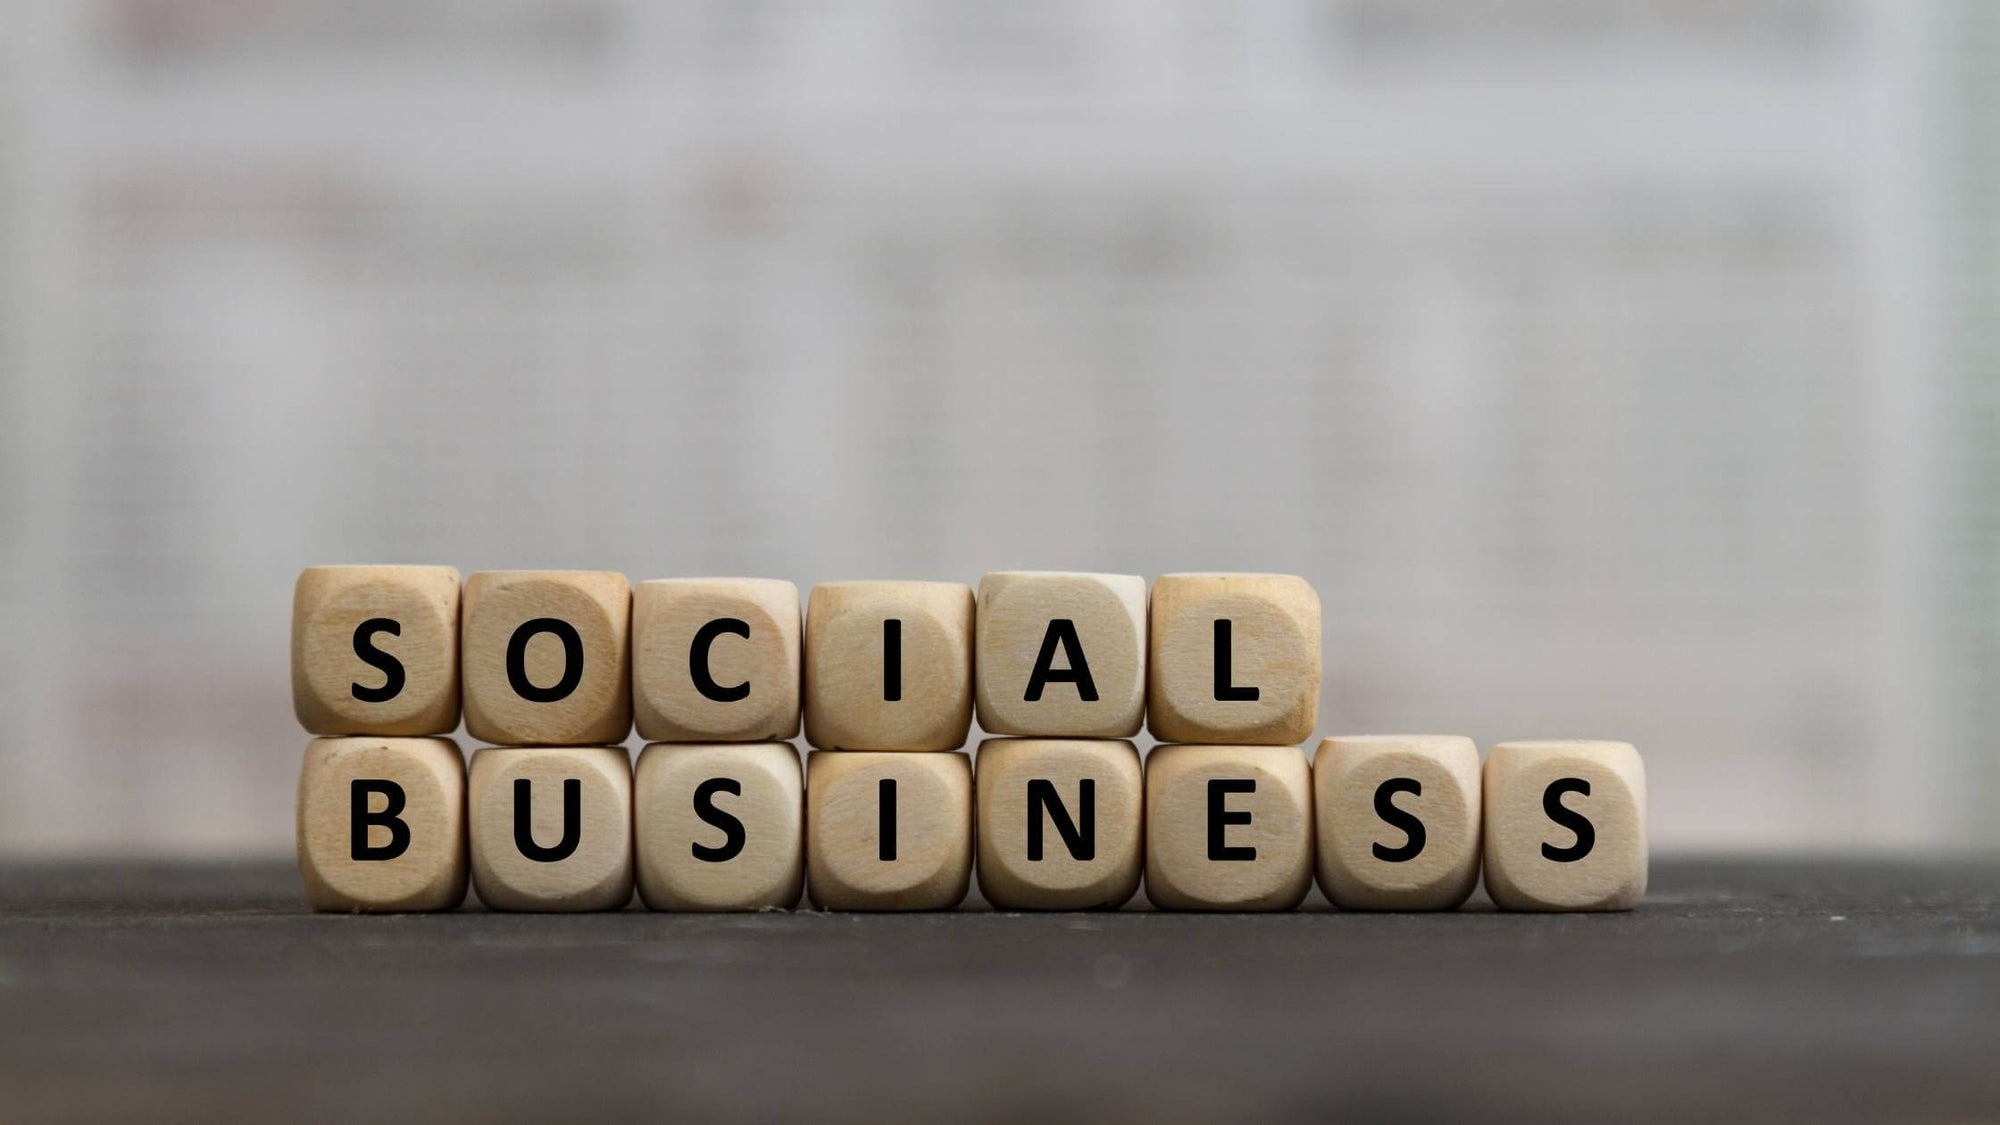 Social Business written with Scrabble tiles